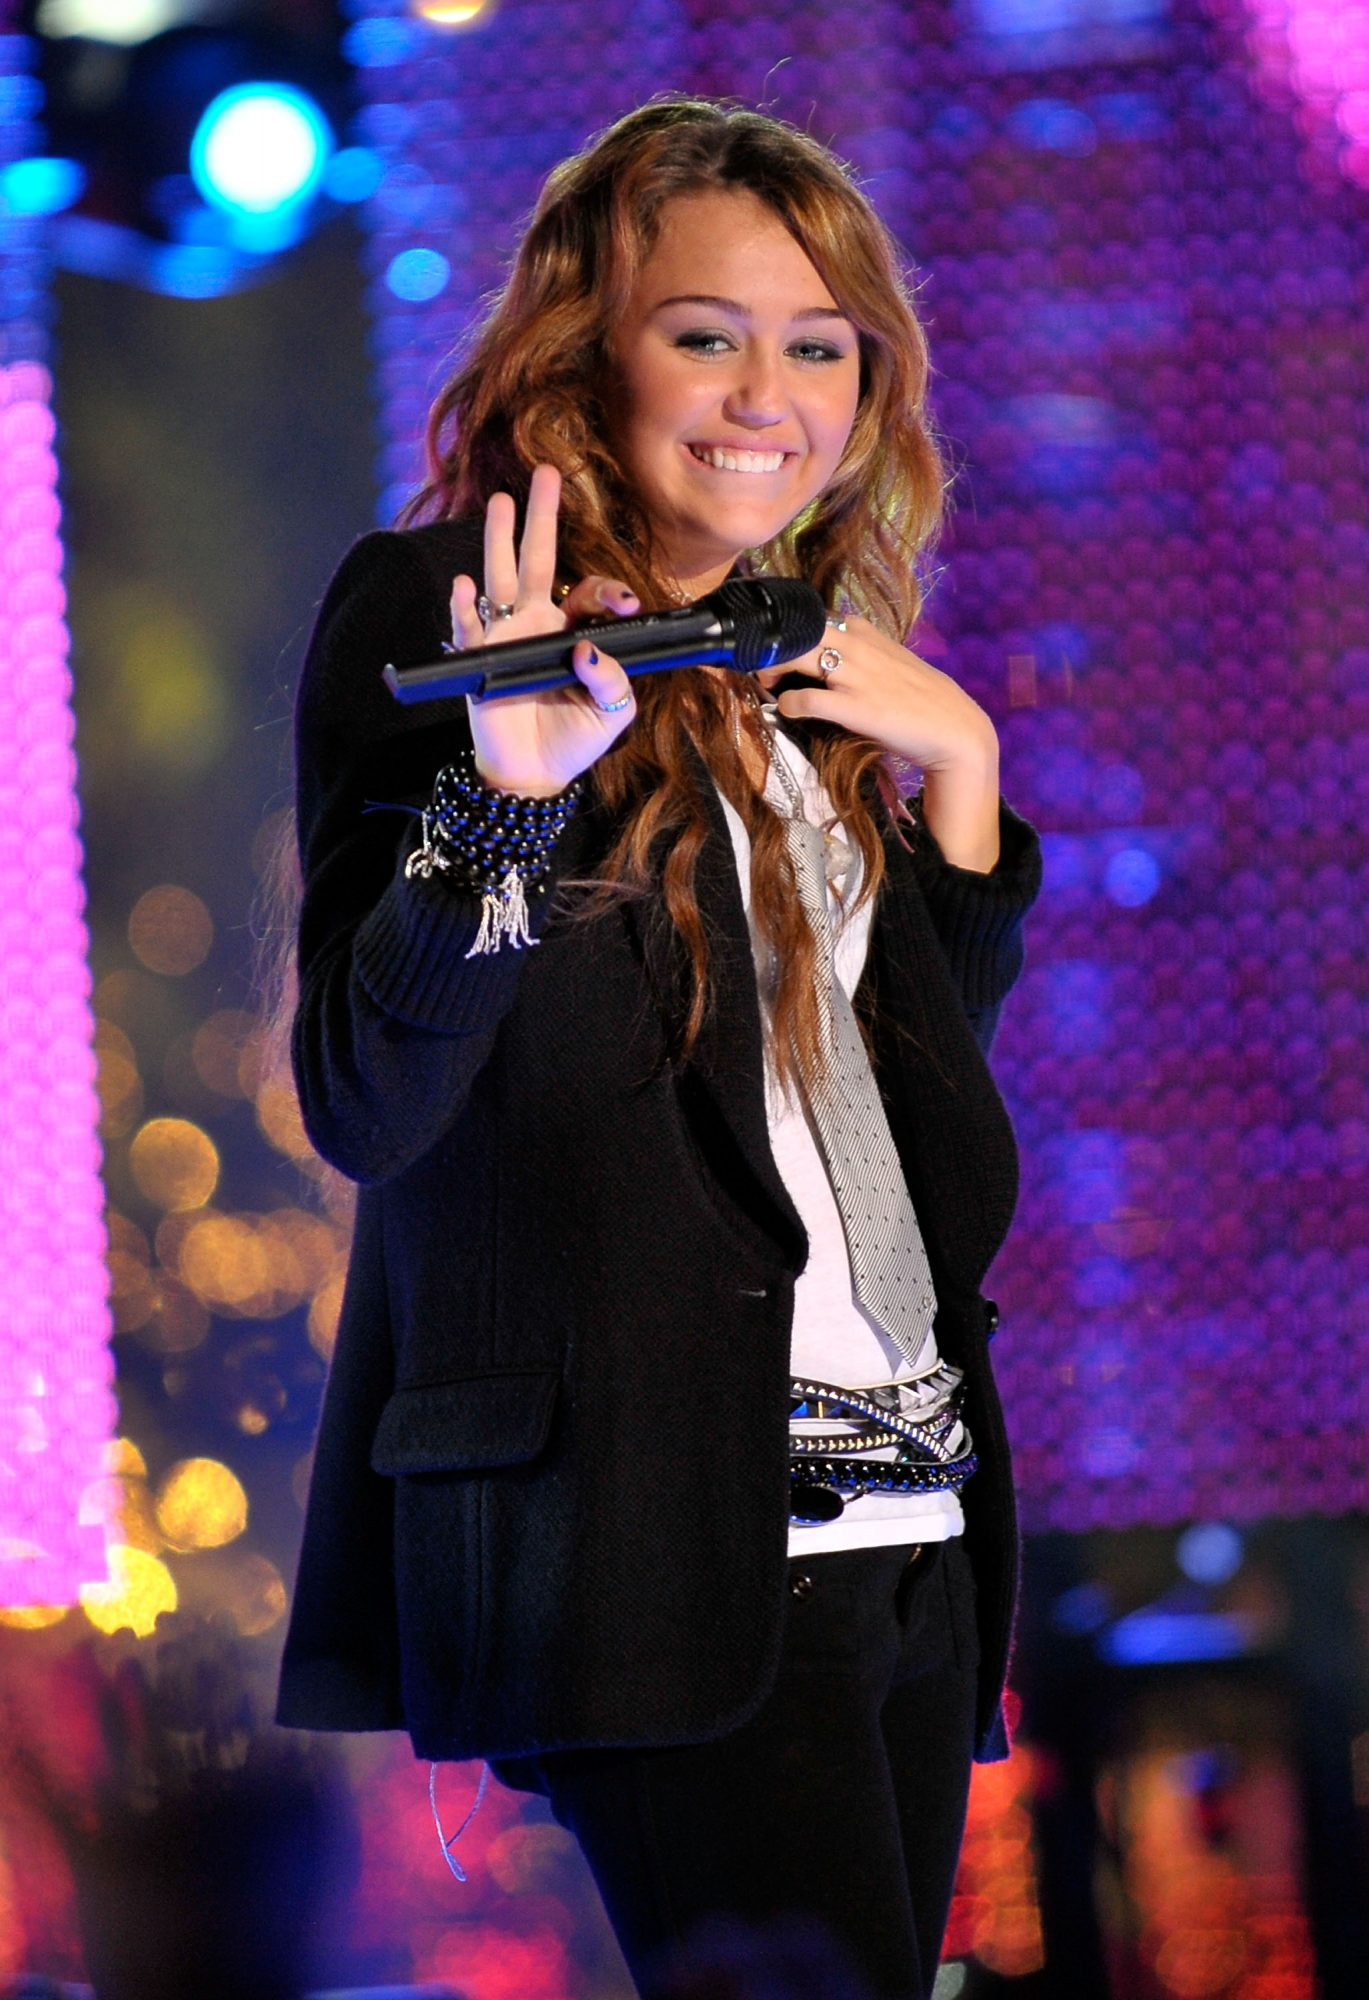 IRVINE, CA - DECEMBER 31:  Singer Miley Cyrus performs during MTV's New Year's Eve Special at Arnold O. Beckman High School on December 31, 2008 in Irvine, California.  (Photo by Charley Gallay/Getty Images)